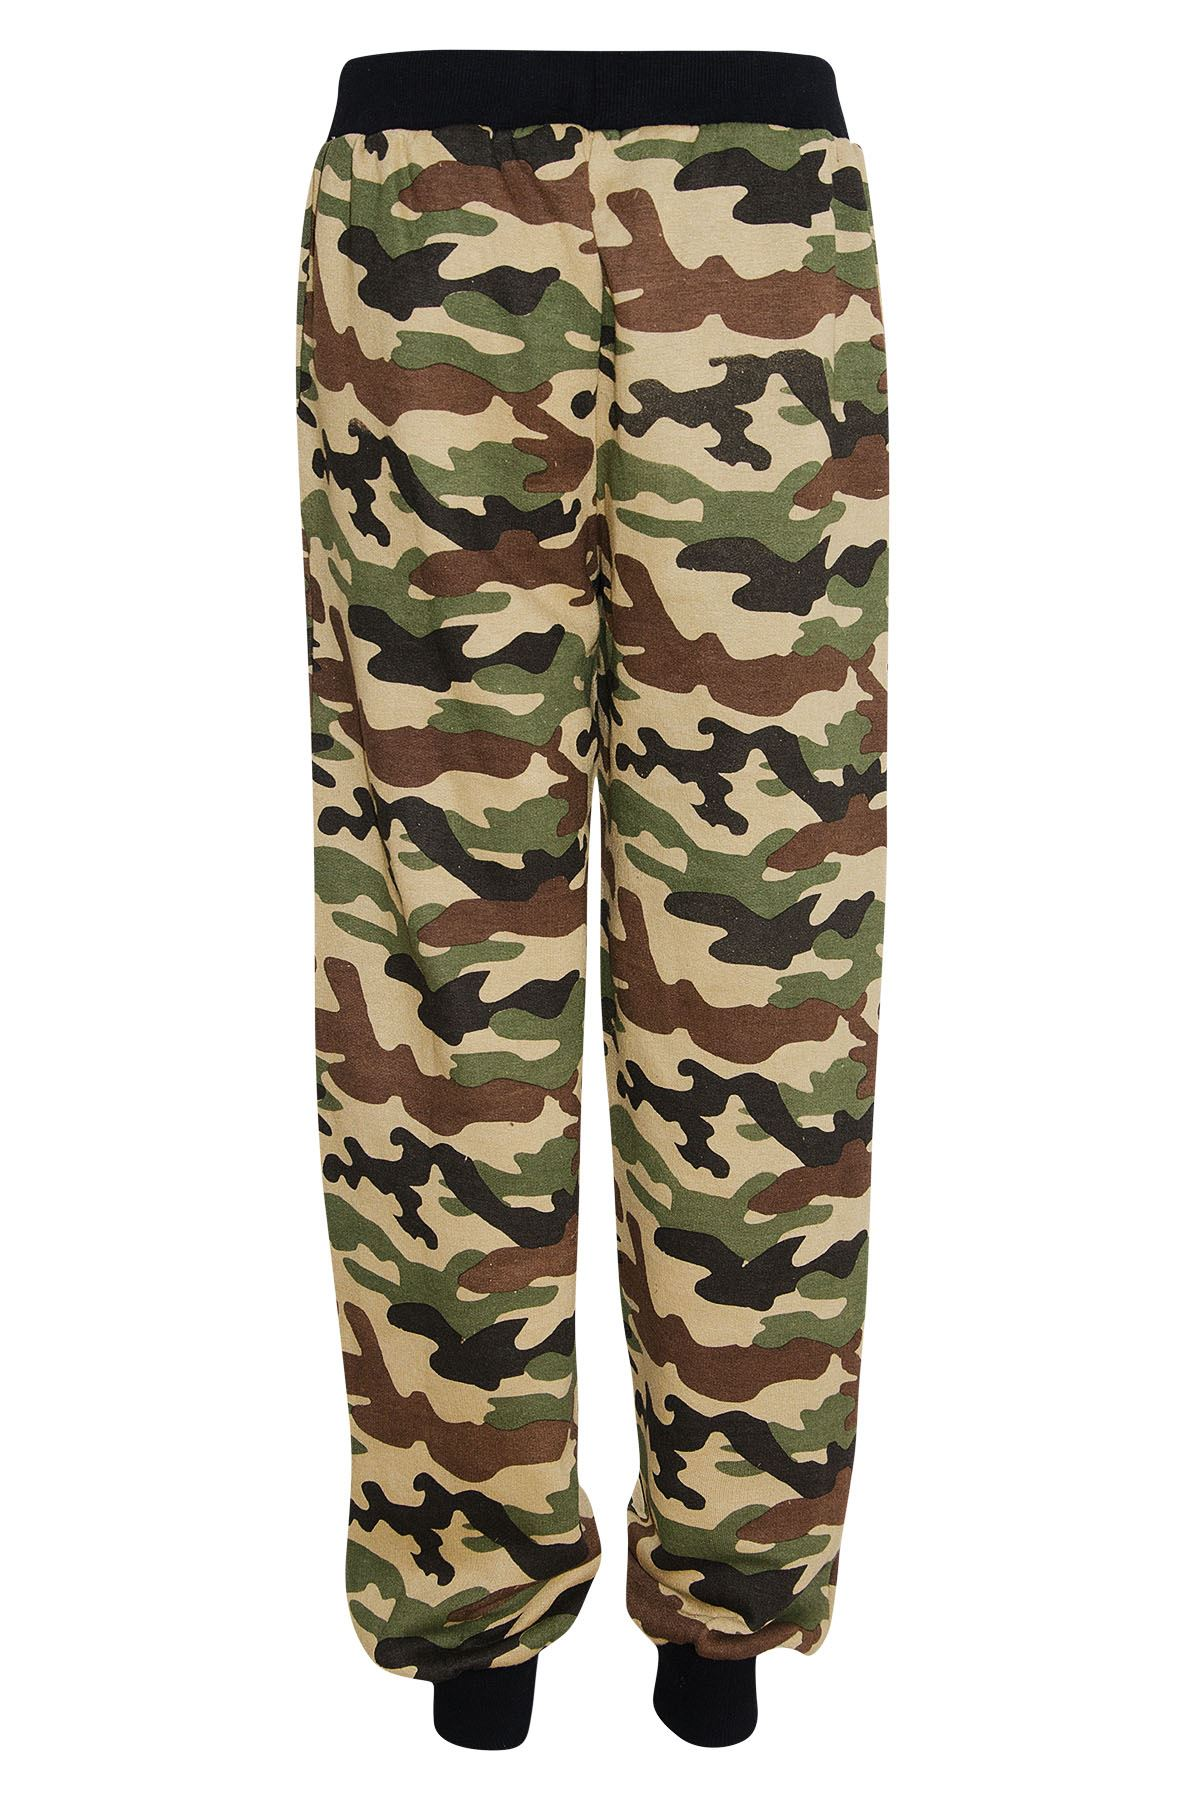 New 50% Off Pants - Plus Size Camo Joggers From Kurveeworldu0026#39;s Closet On Poshmark